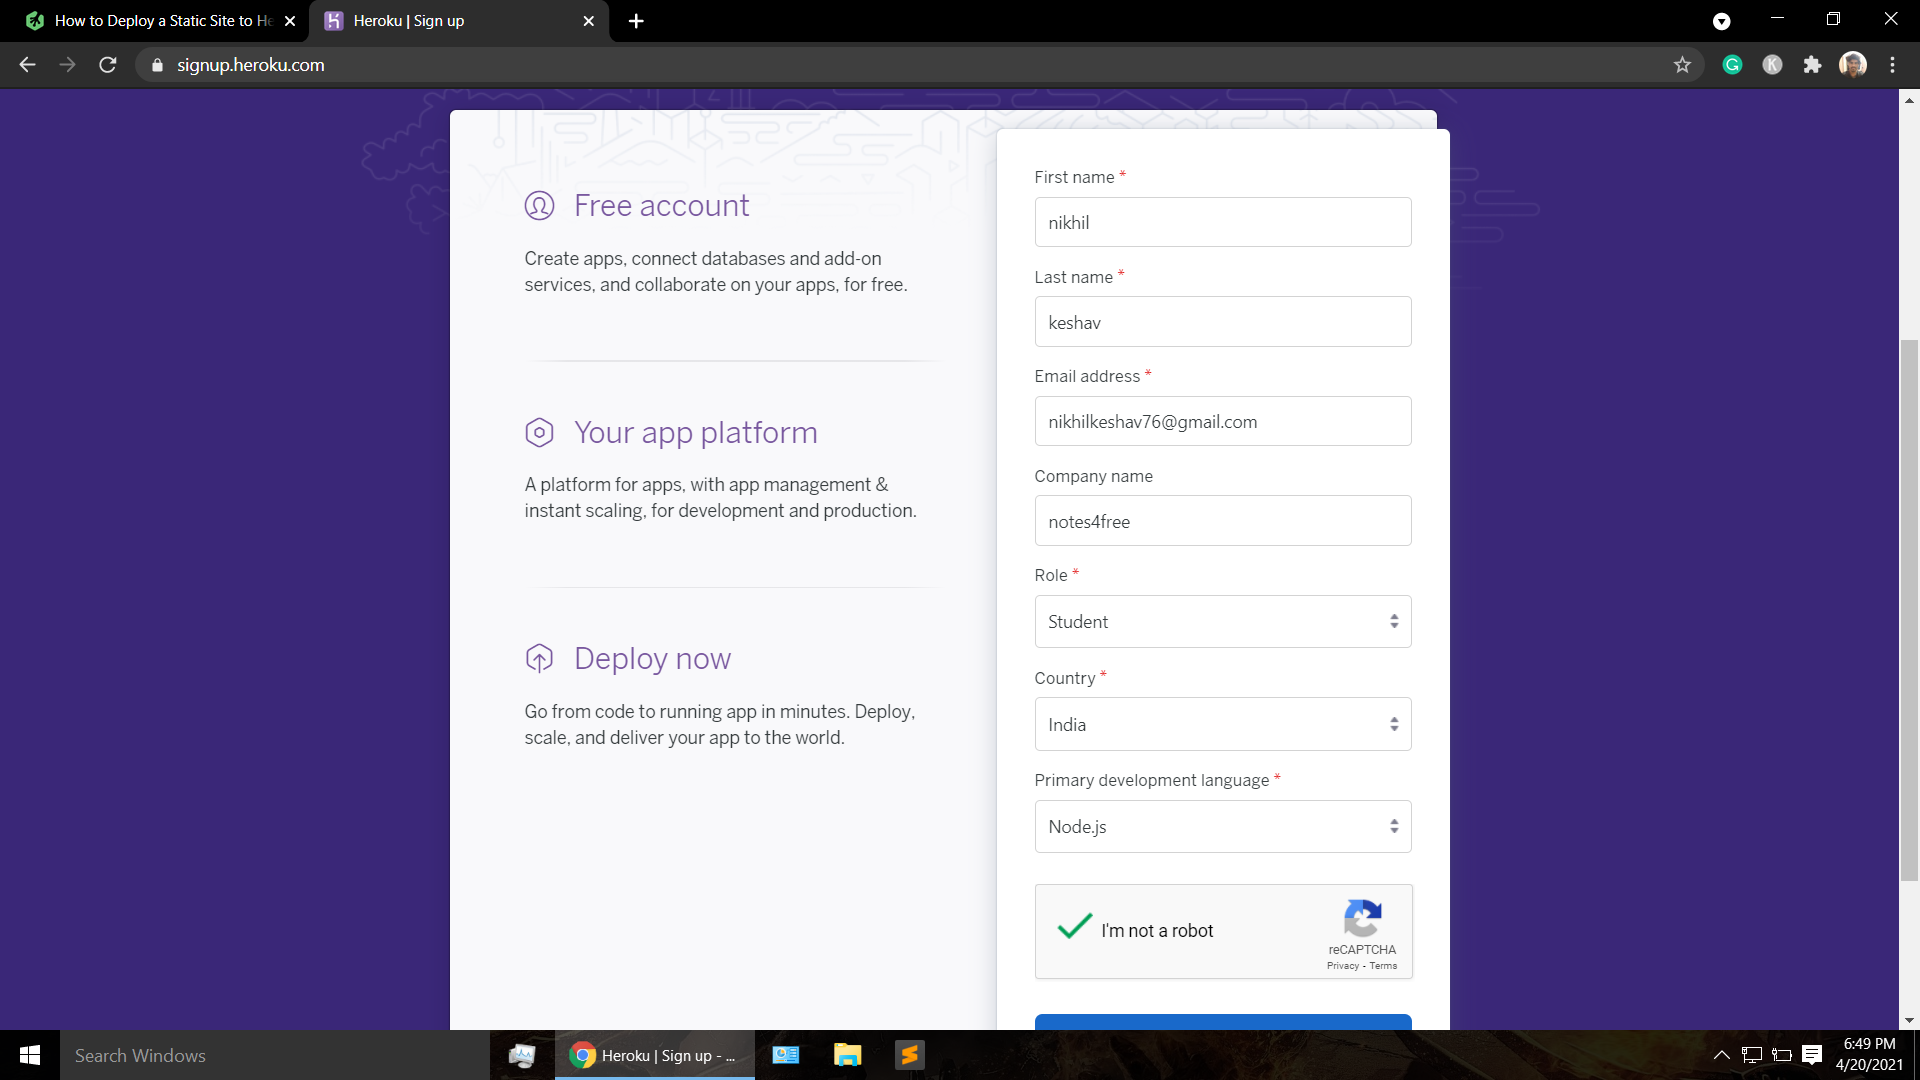 Sign up page in heroku website to host